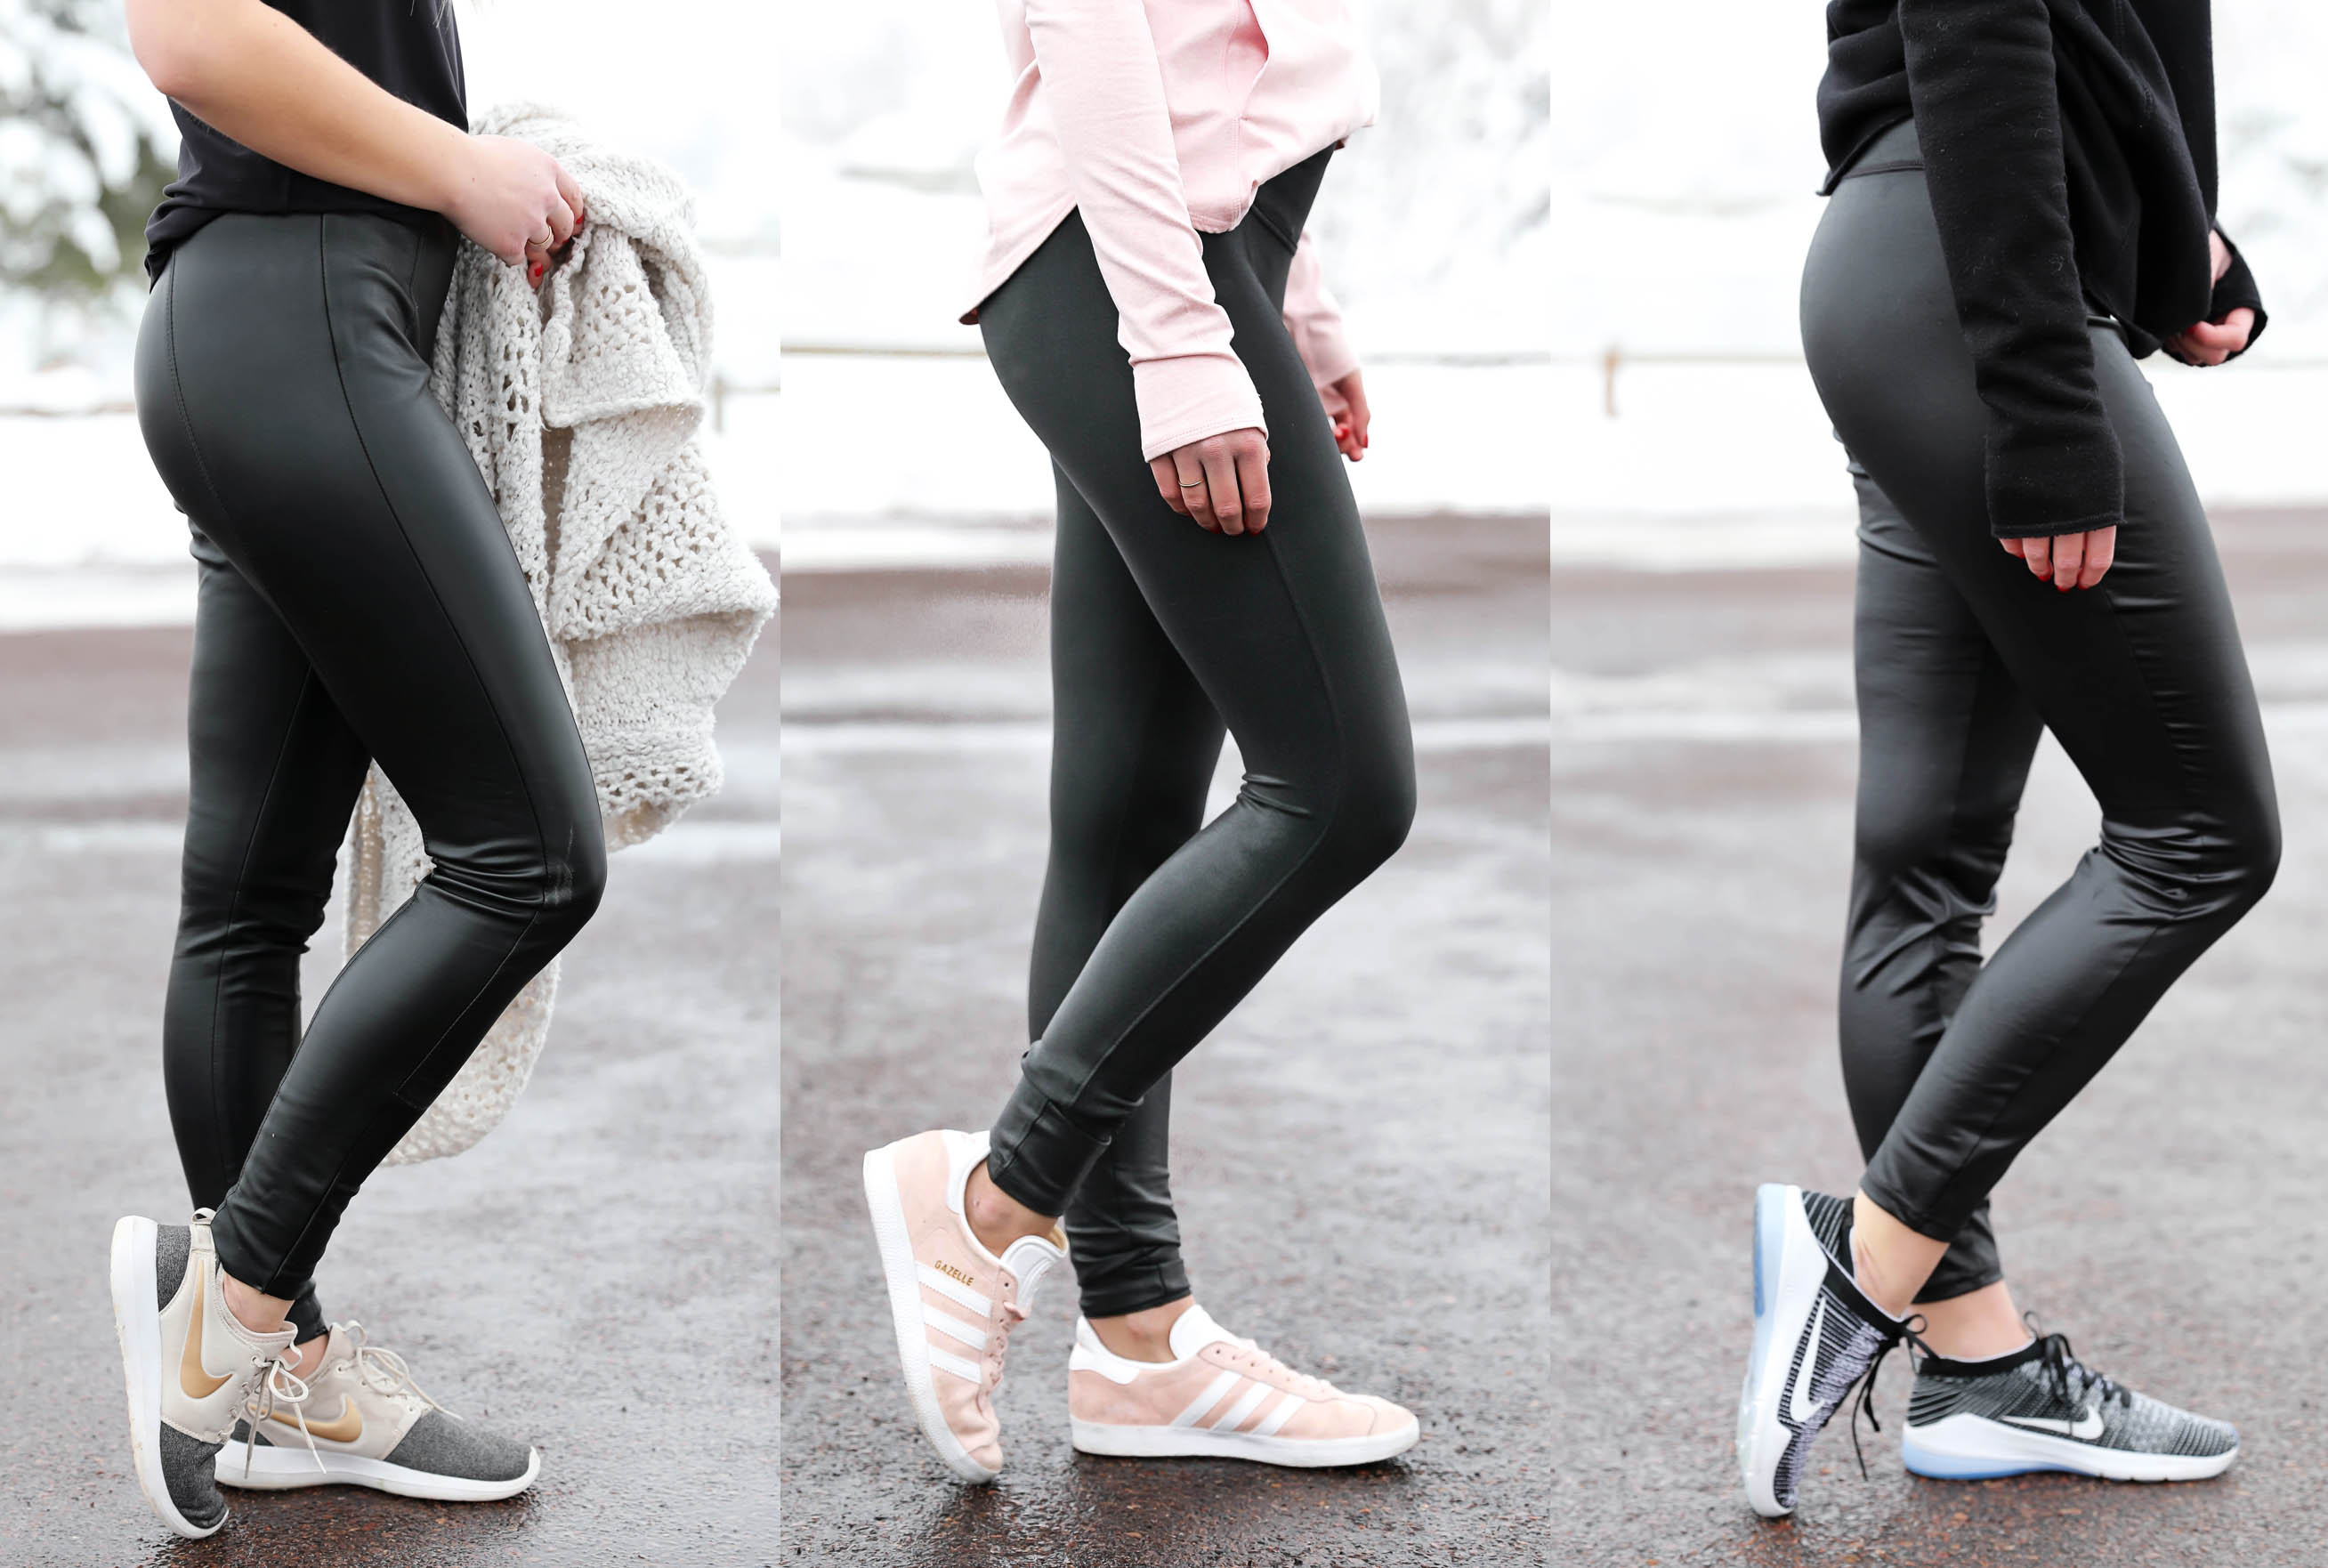 020fd5ad88120 Comparing Three Brands of Faux Leather Leggings | Which is Best?! OOTD